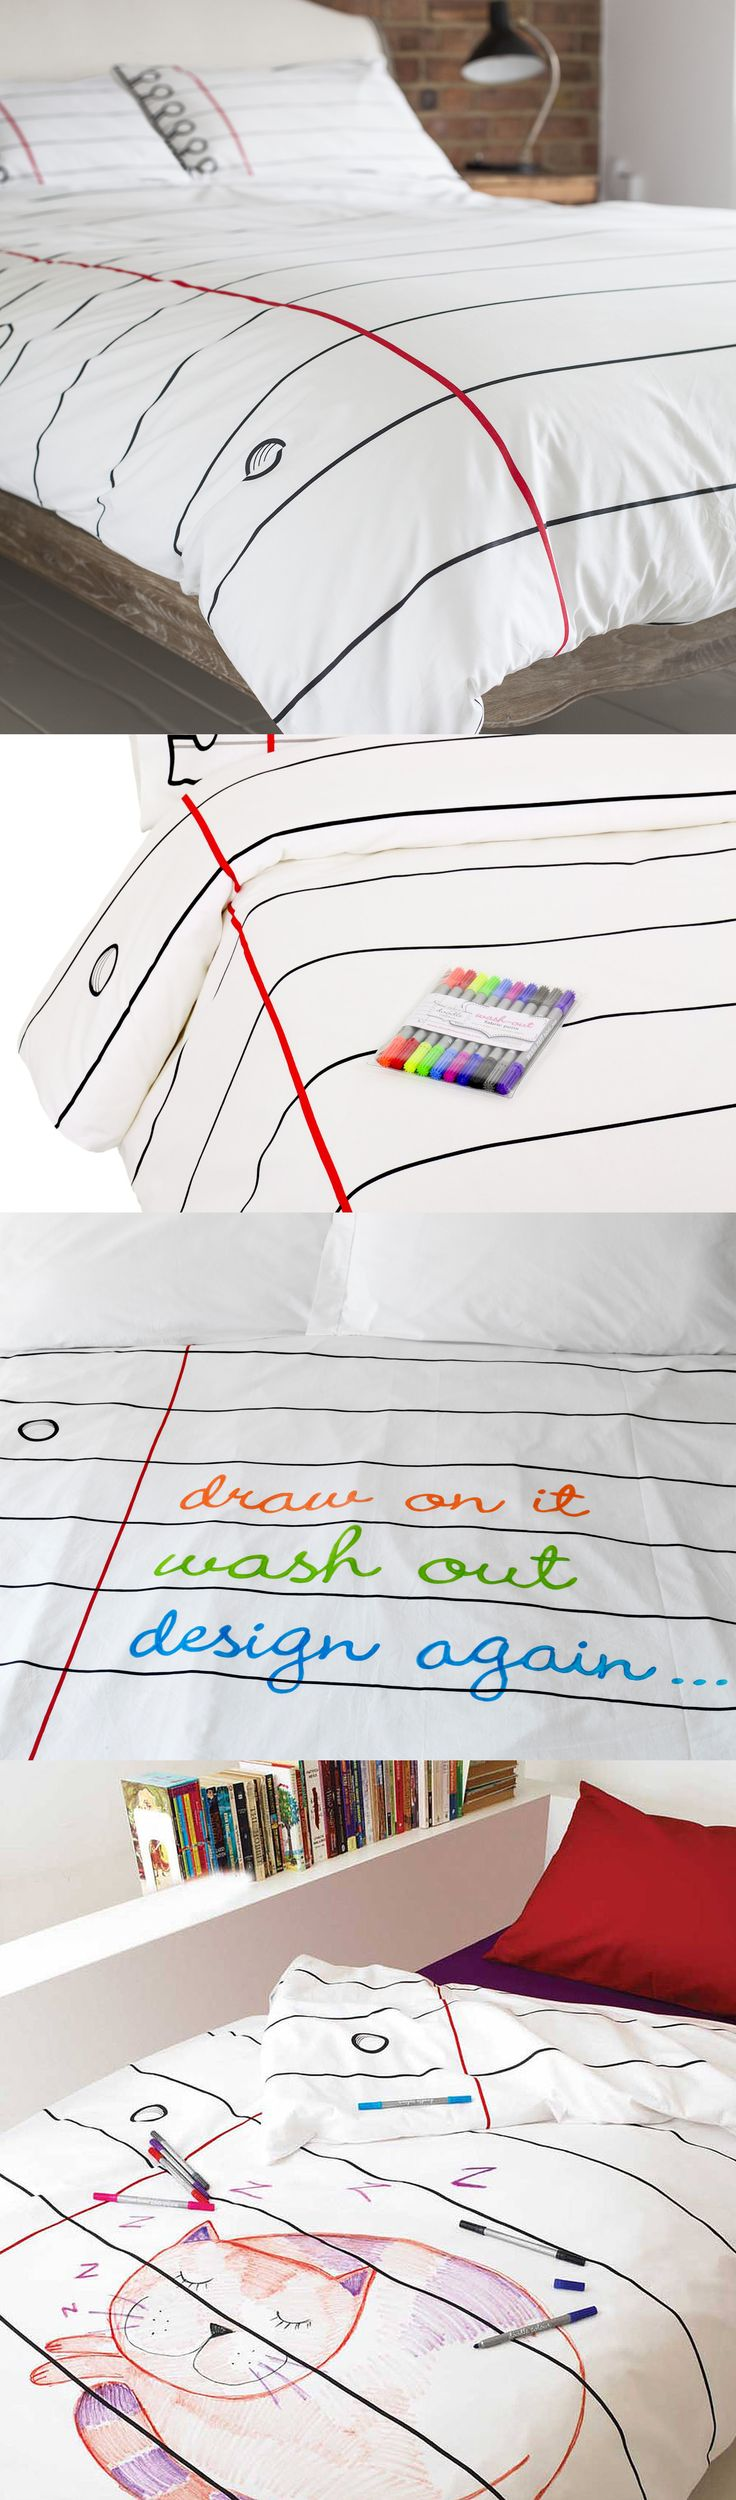 With the Doodle By Stitch Duvet Set draw whatever you want on your bed sheets and when you have had enough simply wash out and start again! Check them out at http://wtfgadgets.com/doodle-stitch-200-reversible-draw-on-duvet-set